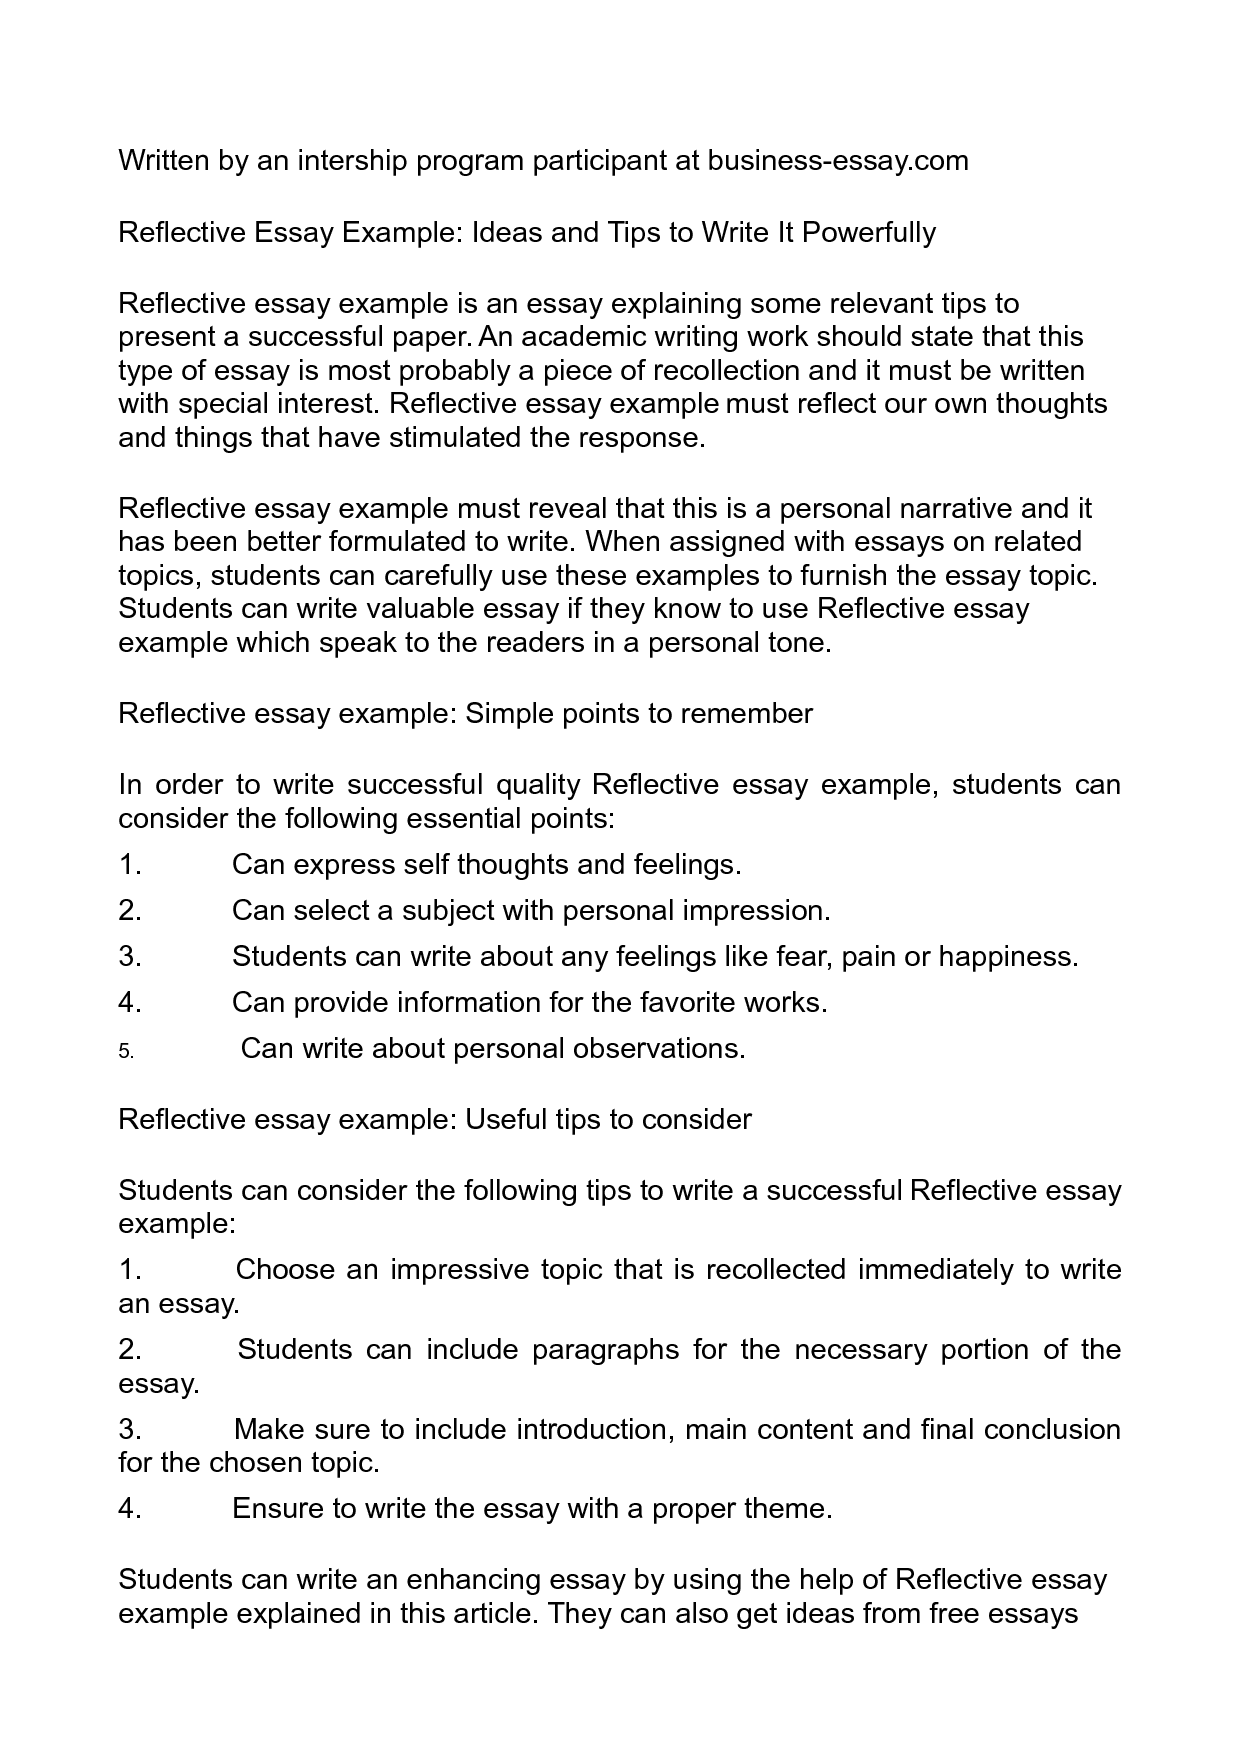 005 Essay Example 1btuopqhuu Reflective Magnificent Outline Course Reflection Paper Pdf Full